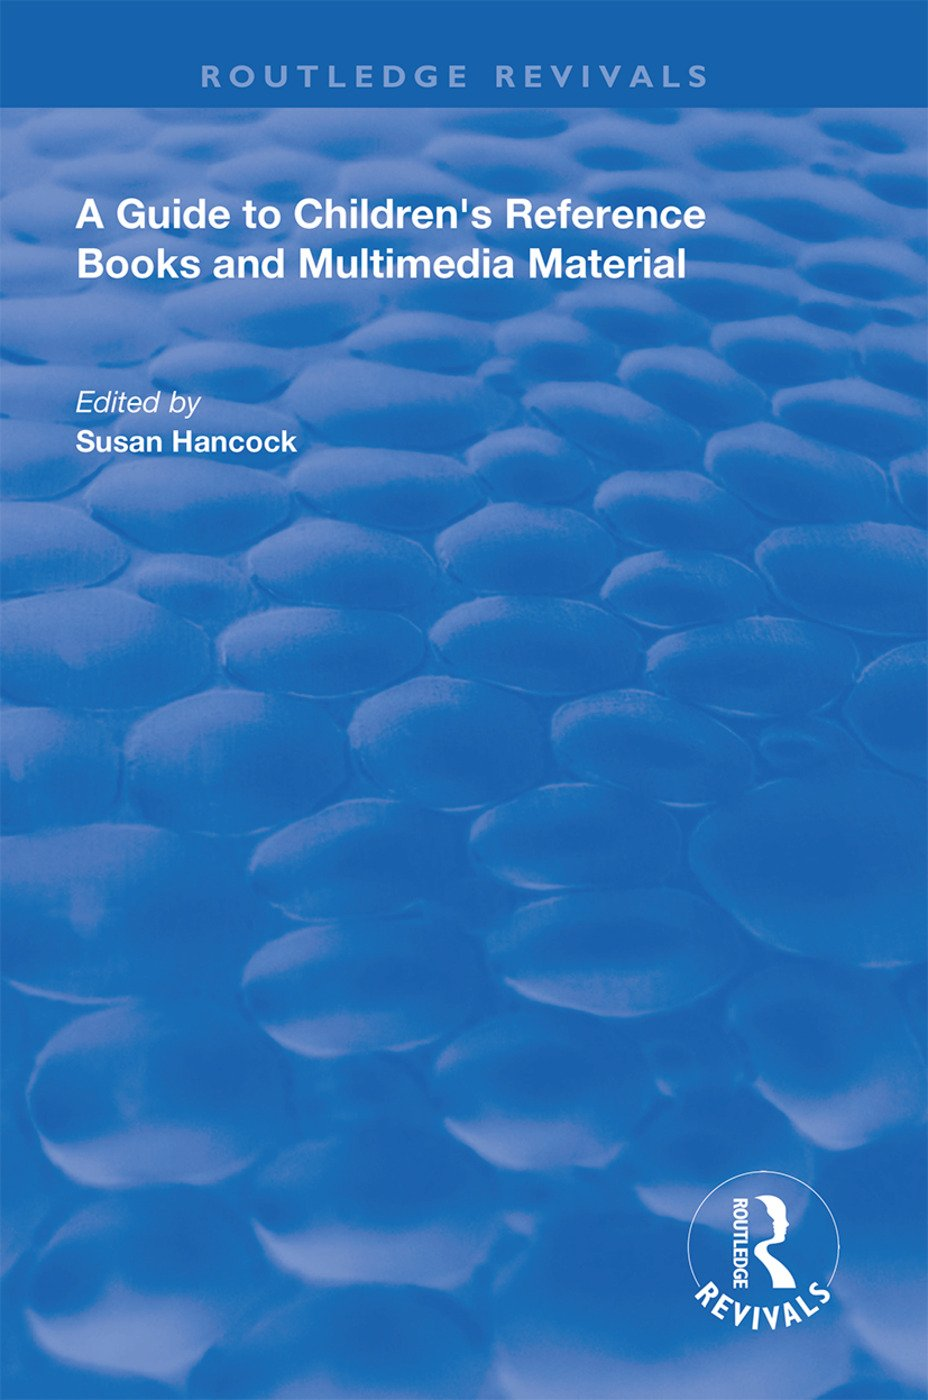 A Guide to Children's Reference Books and Multimedia Material